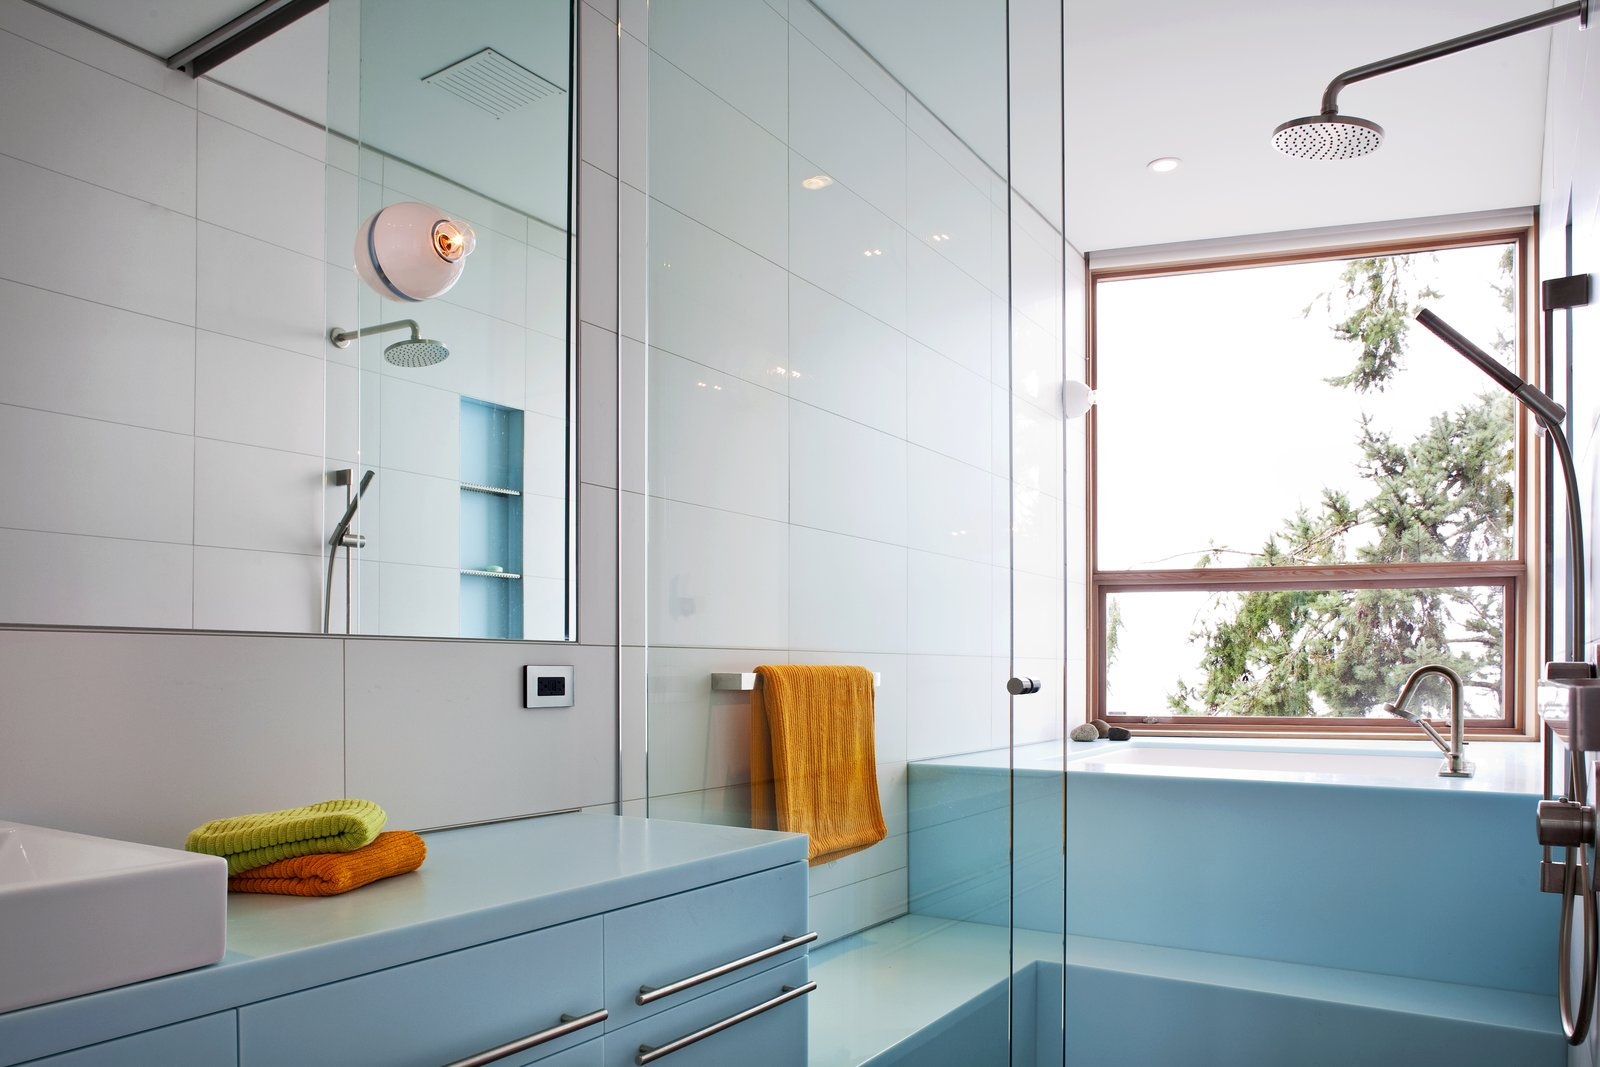 The pale blue of this bathroom in the main house creates a peaceful, serene atmosphere. The seating shower stalls, and a tub that provides a view to the outdoors makes for an incredibly luxurious, rejuvenating experience.   #paleblue #bathroom #shower #bath #tub #color #bright #beachhouse #glass #showerdoor #minimal #modern #relaxing #spa #interstice #intersticearchitects #interiorarchitecture #bathroomdesign #bradlaughton #bradlaughtonphotography   TreeHugger by INTERSTICE Architects